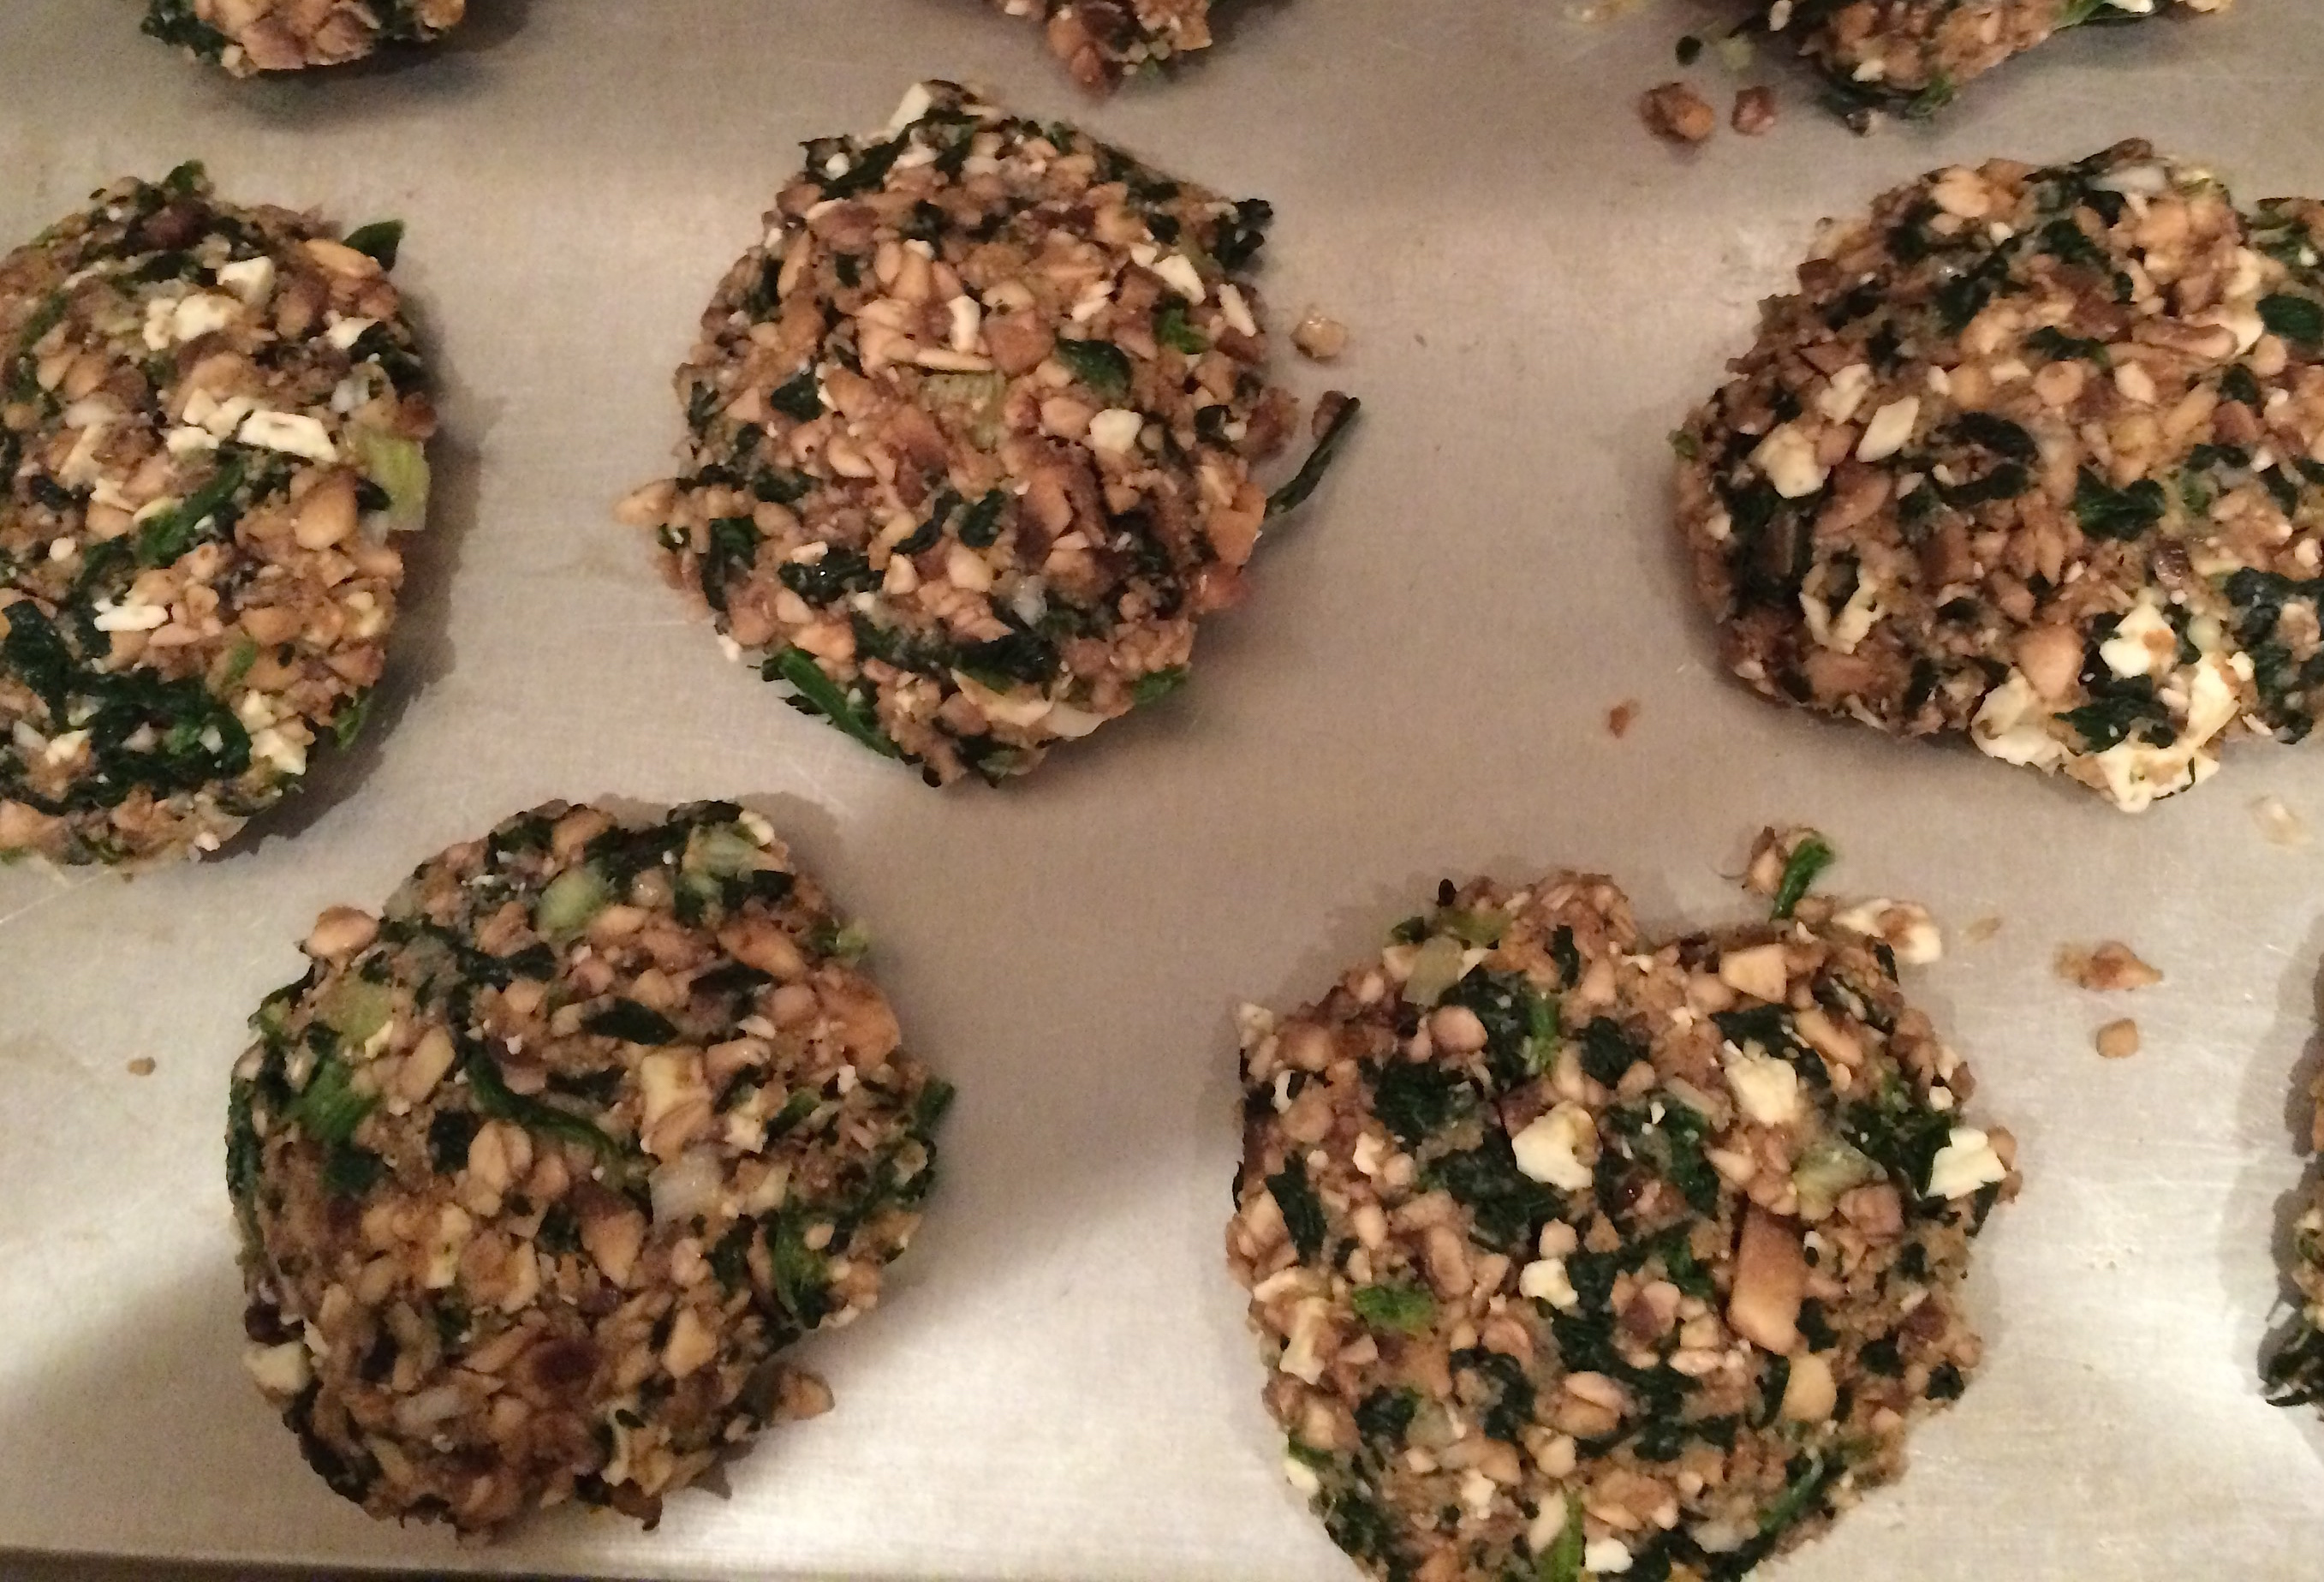 Uncooked Spinach, Mushroom and Feta patties on baking sheetIMG_2124